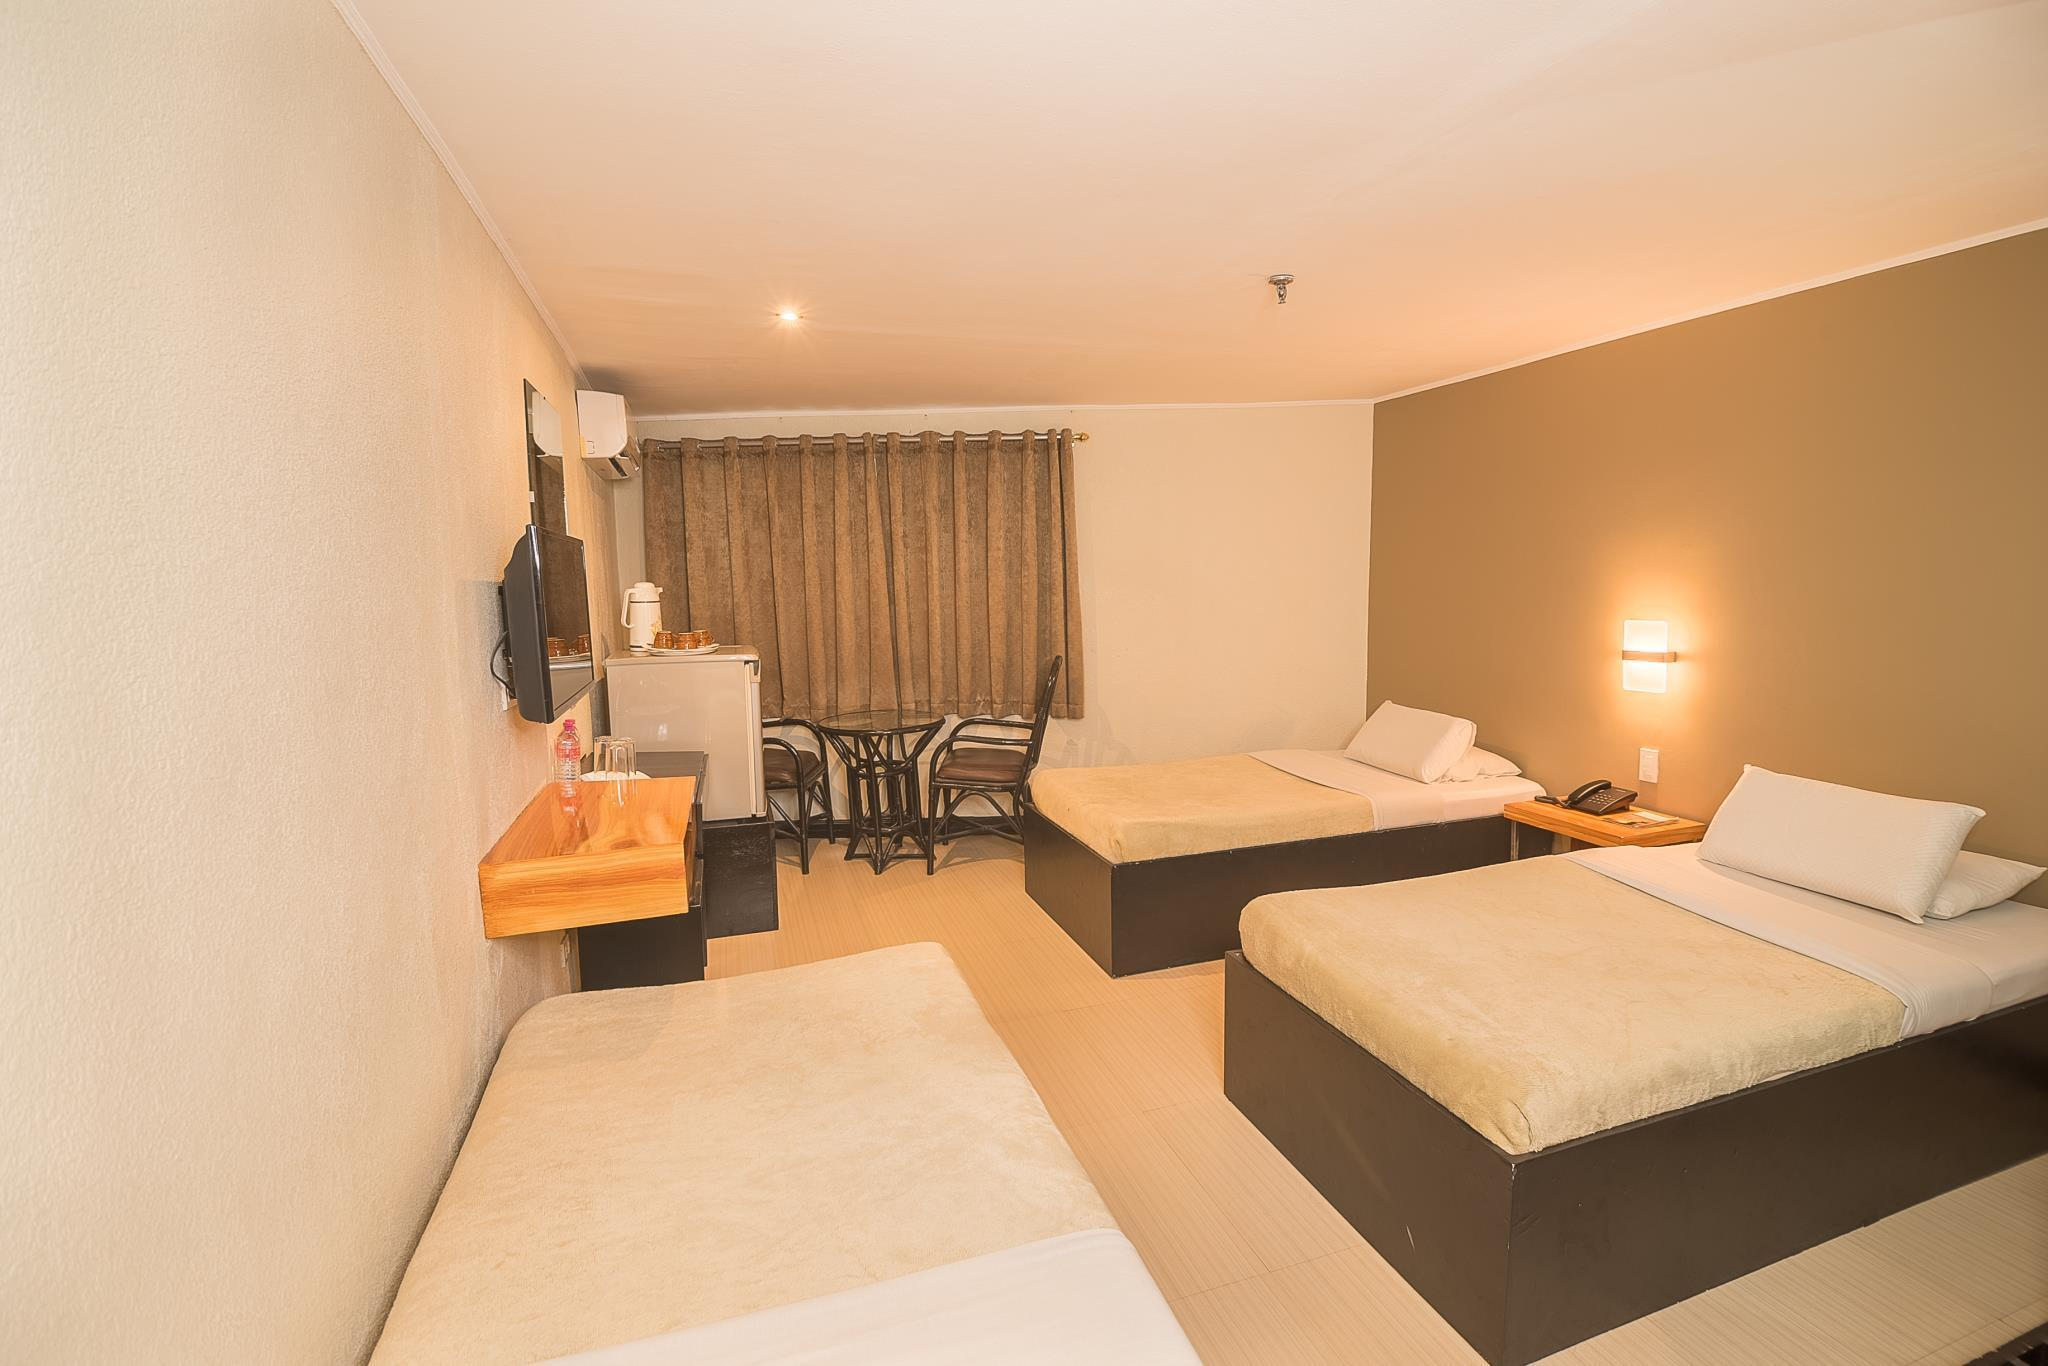 Asia stars hotel in tacloban city room deals photos reviews for Stars swimming pool tacloban city